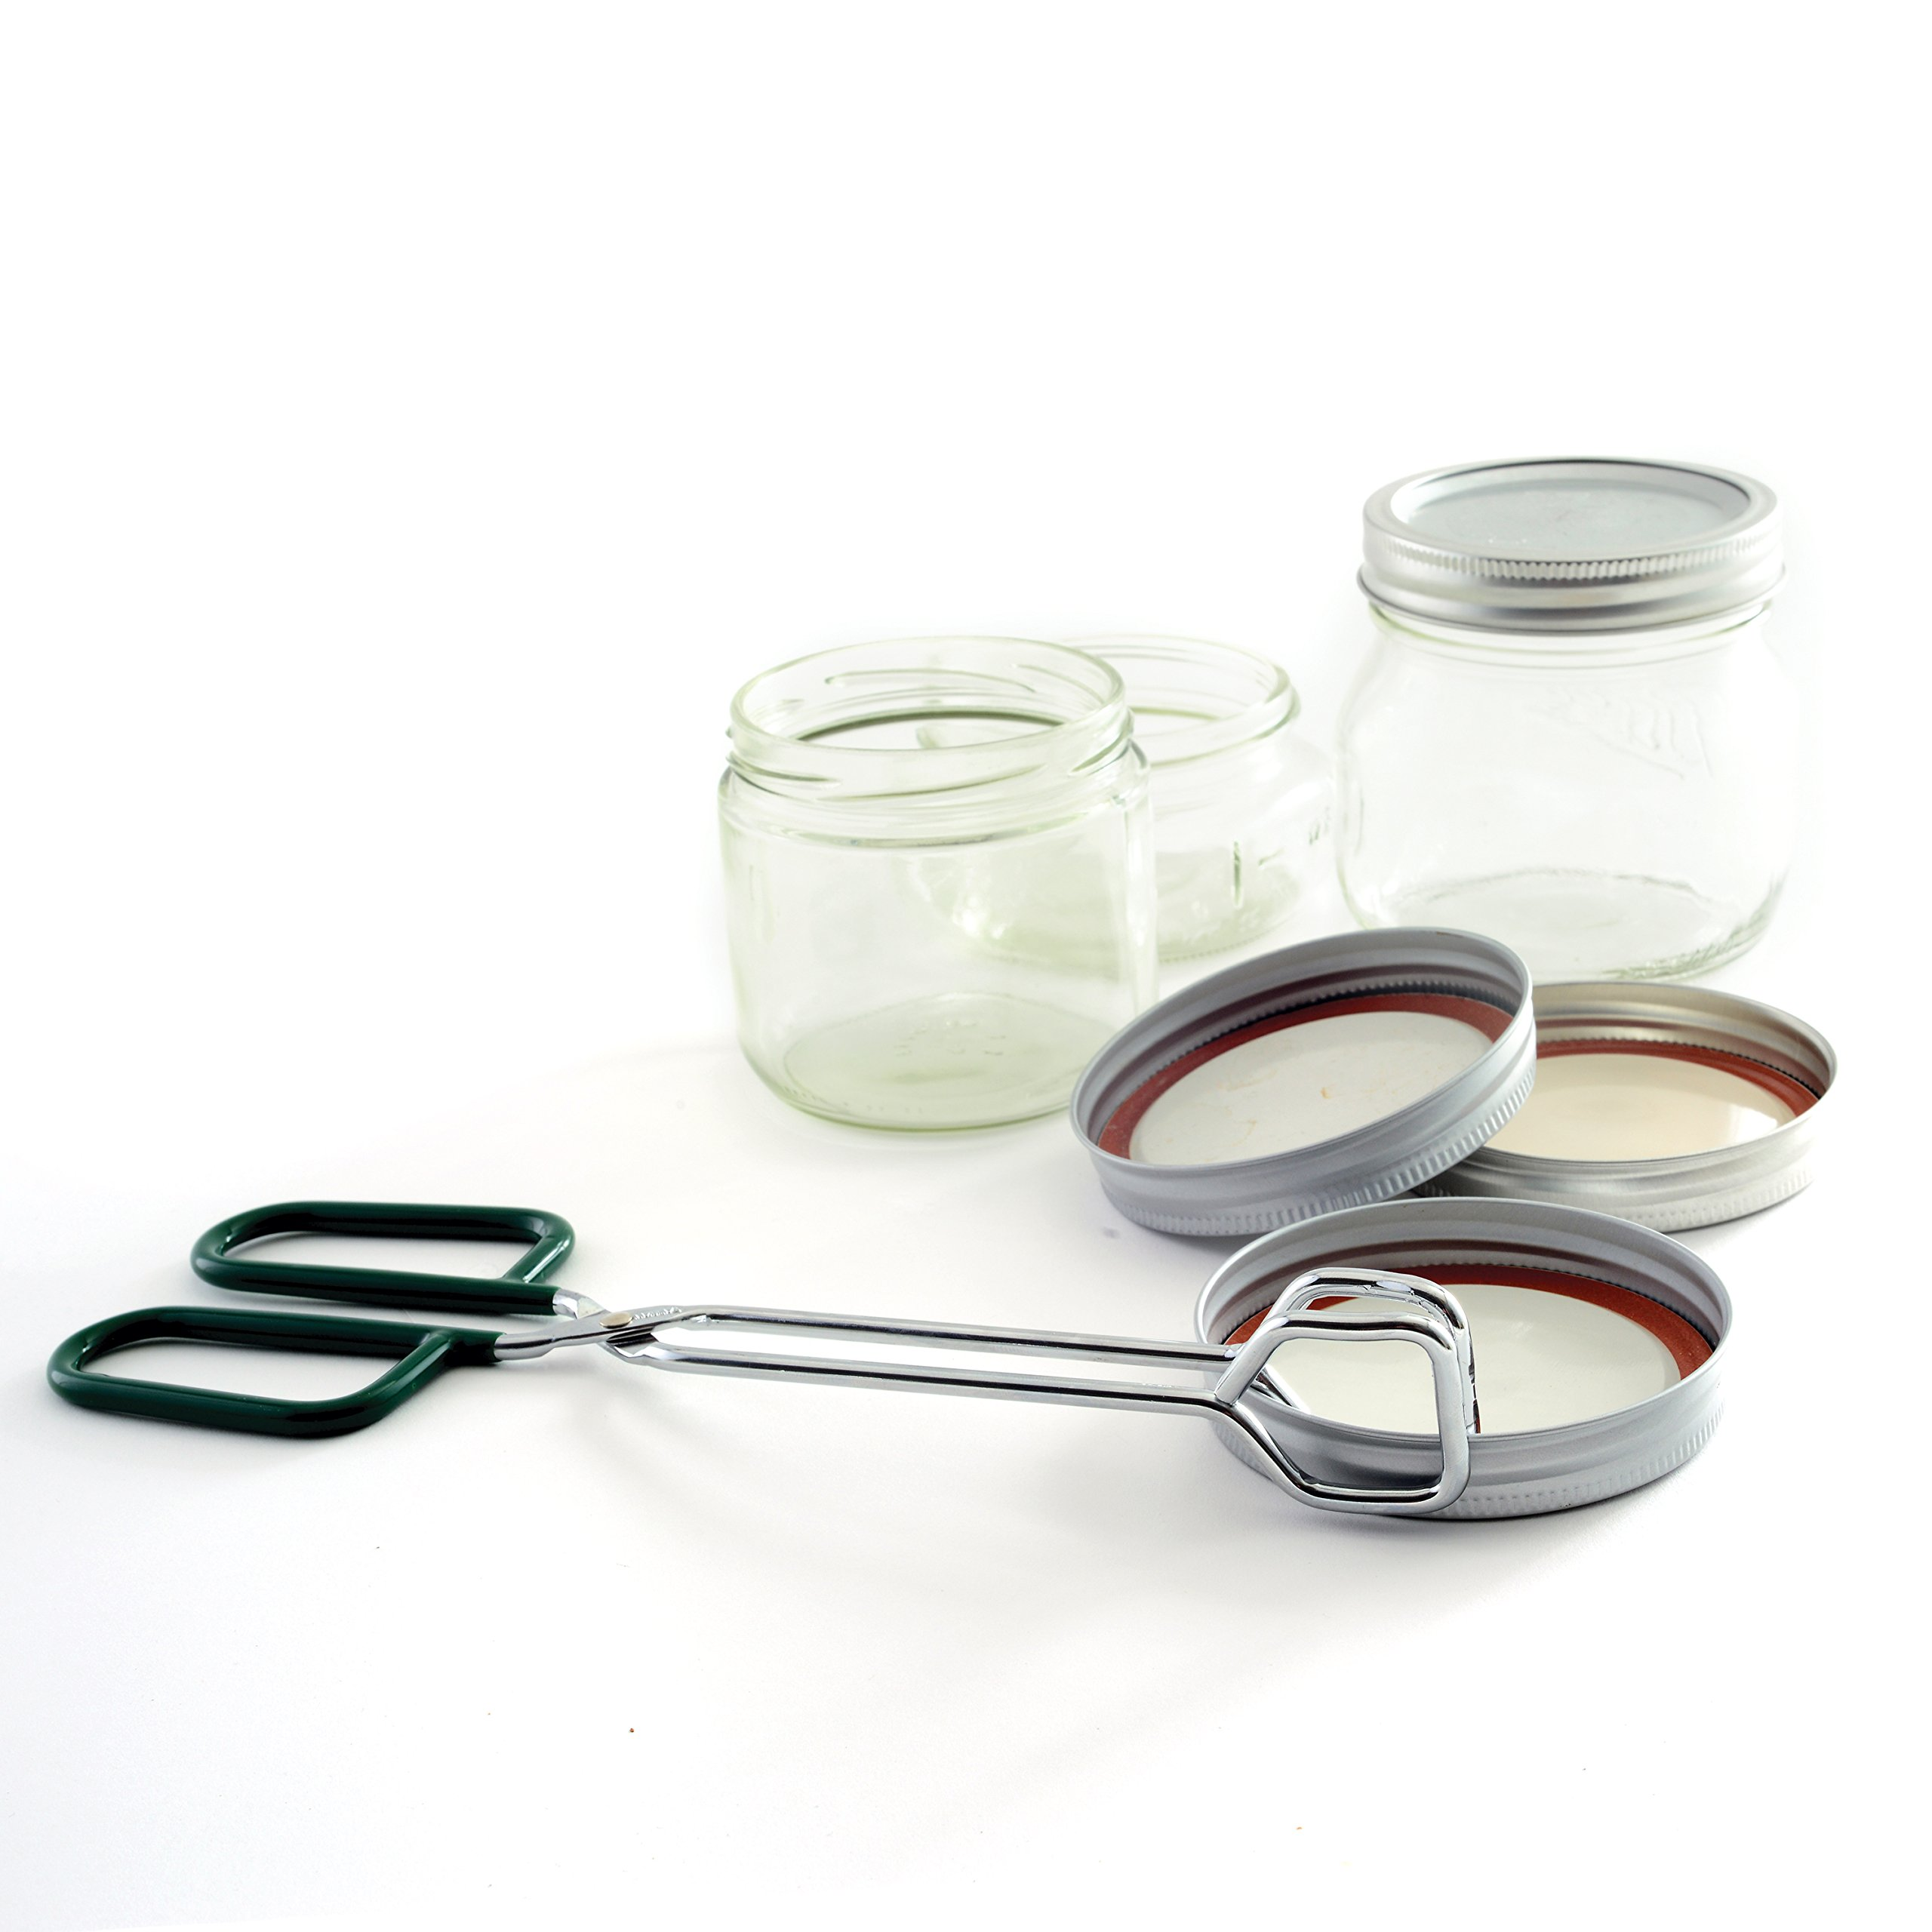 Image Result For Vegetable Canning Set Amazon